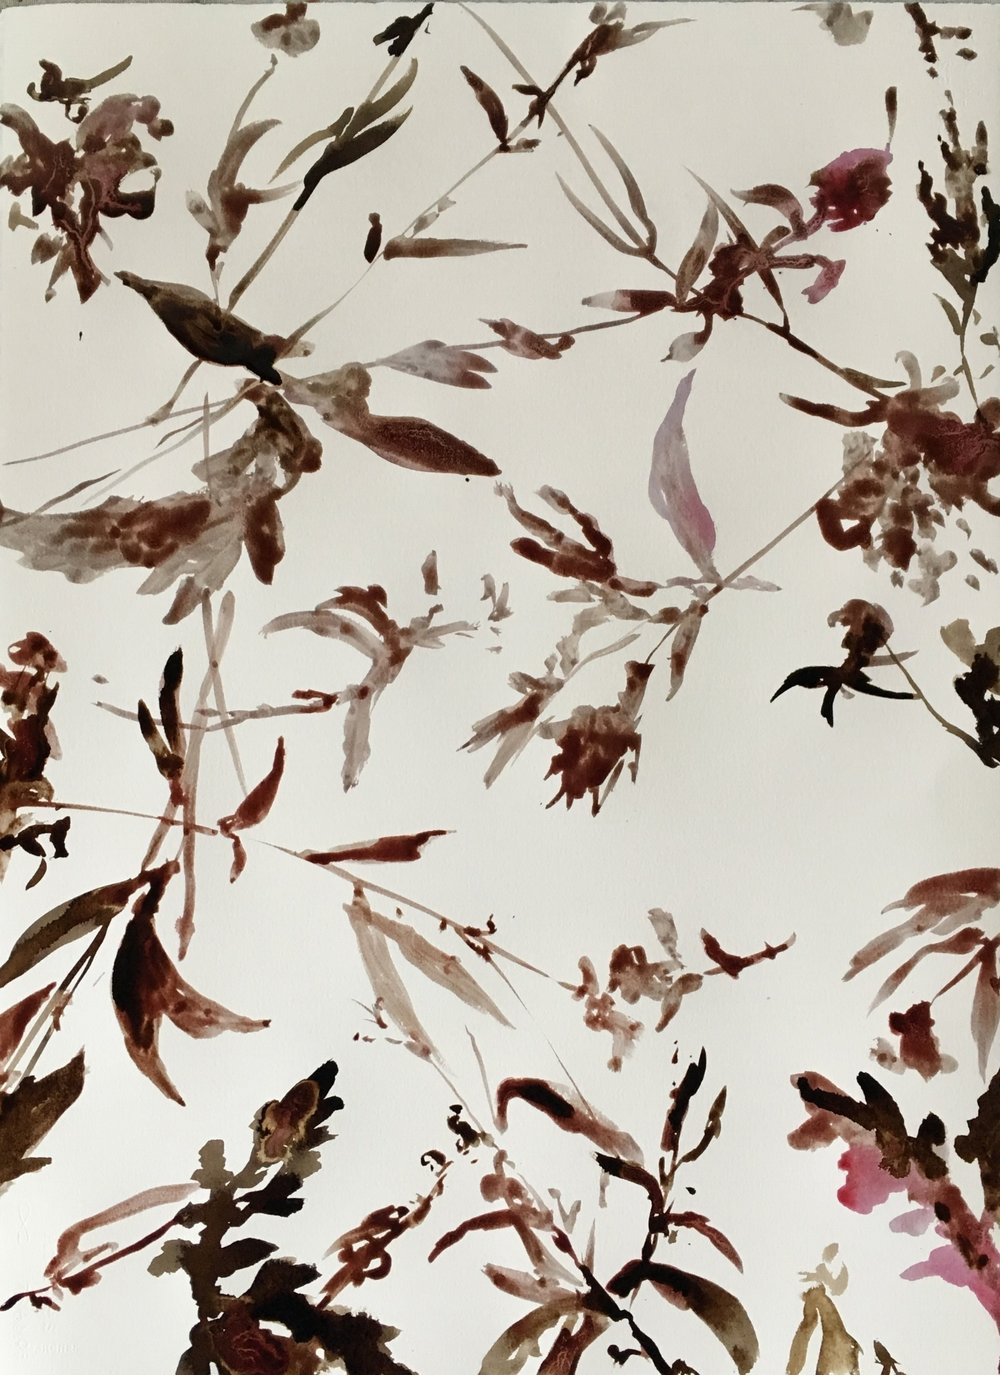 hibiscus and black walnut ink on paper / 22in x 30in / 2018